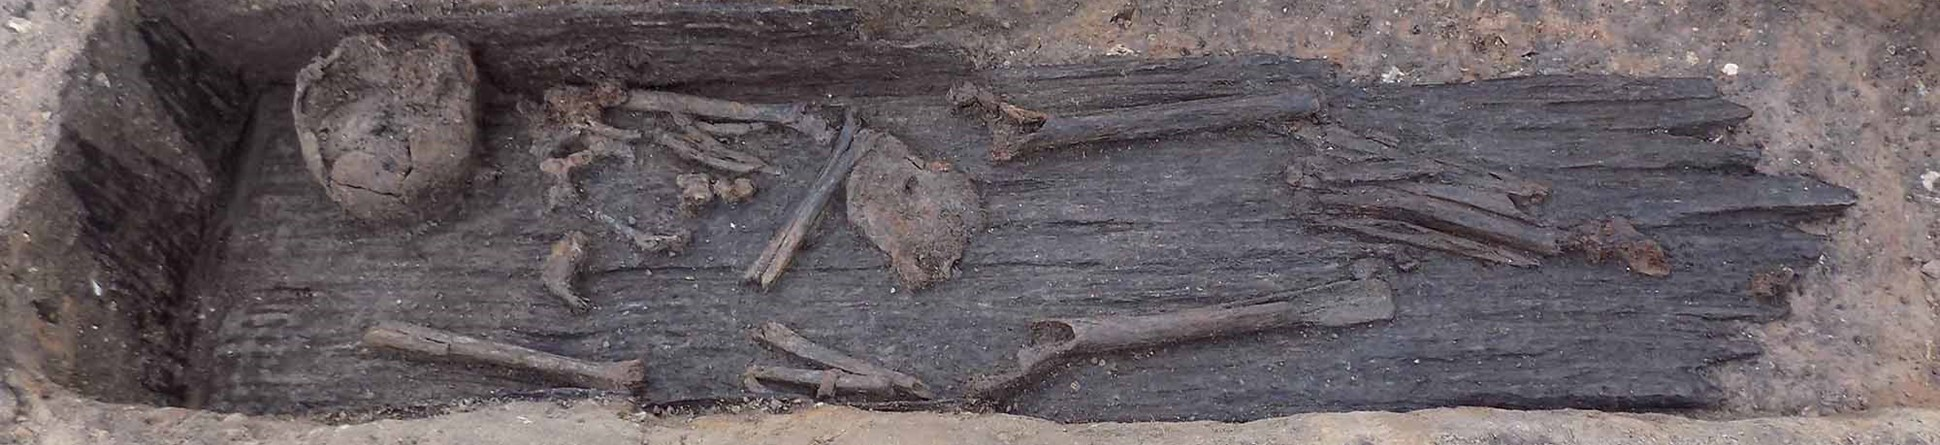 A plank lined grave with human remains